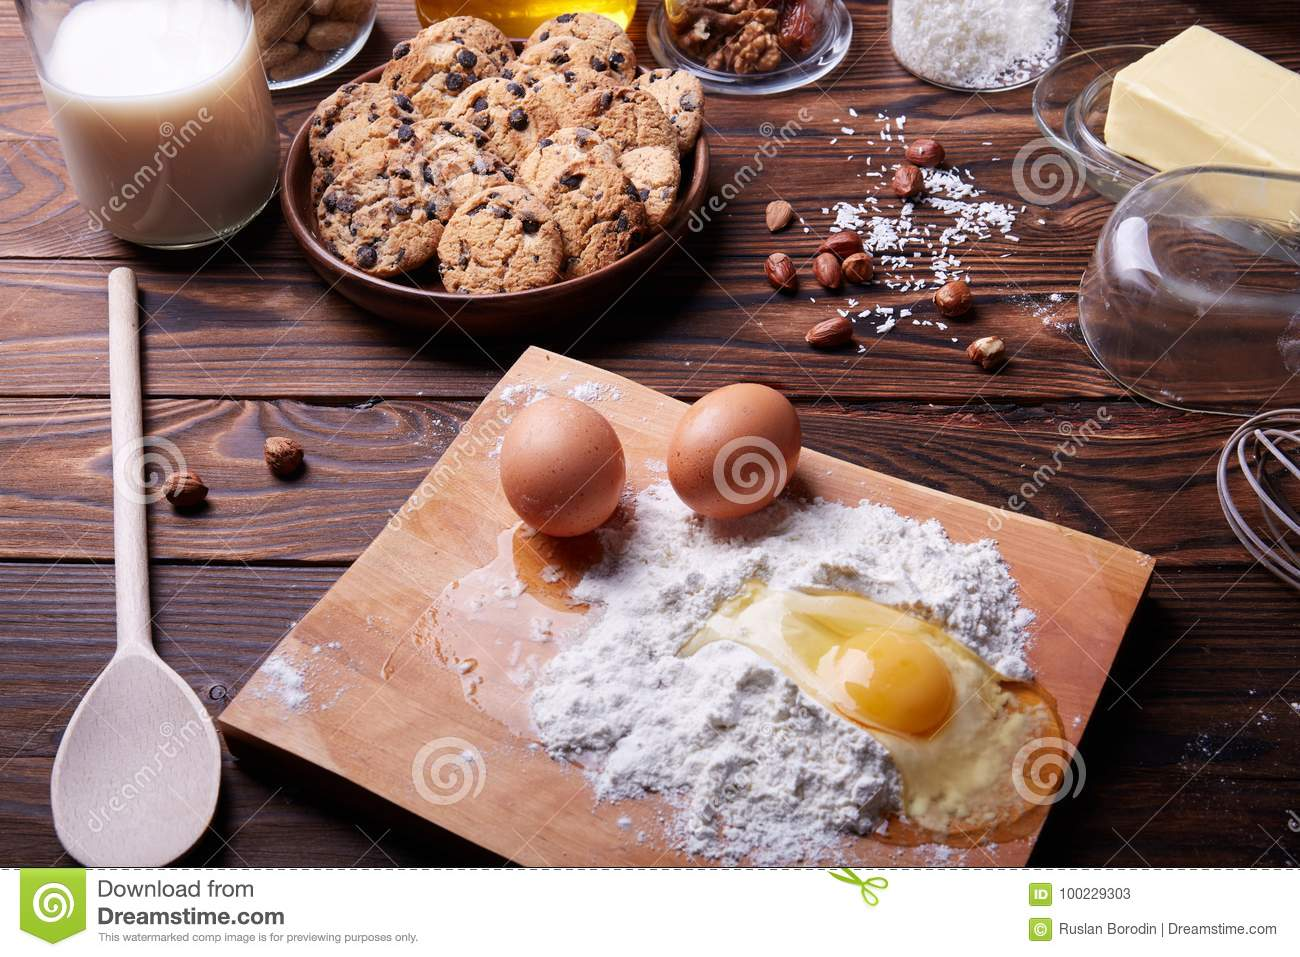 Cooking at home concpet healhty food wooden flour stock image royalty free stock photo forumfinder Choice Image